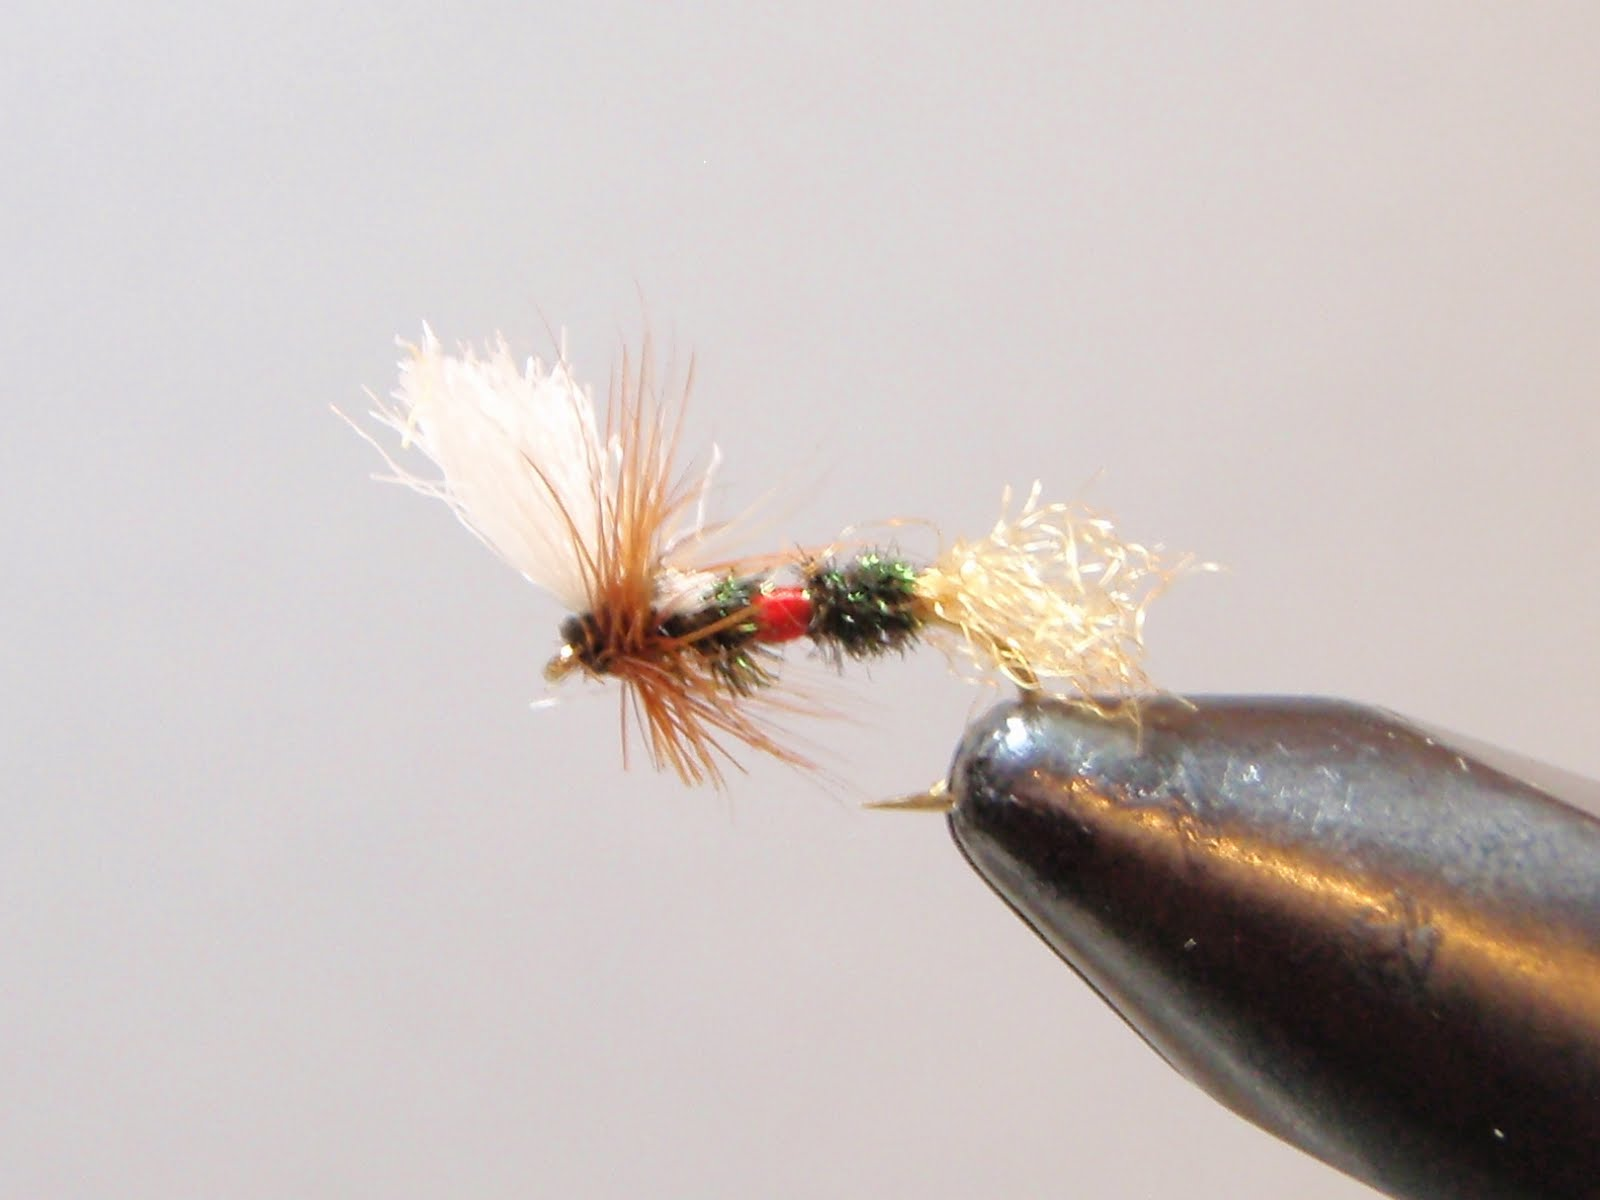 Mountains rivers trout flies not for sale for Fly fishing flies for sale